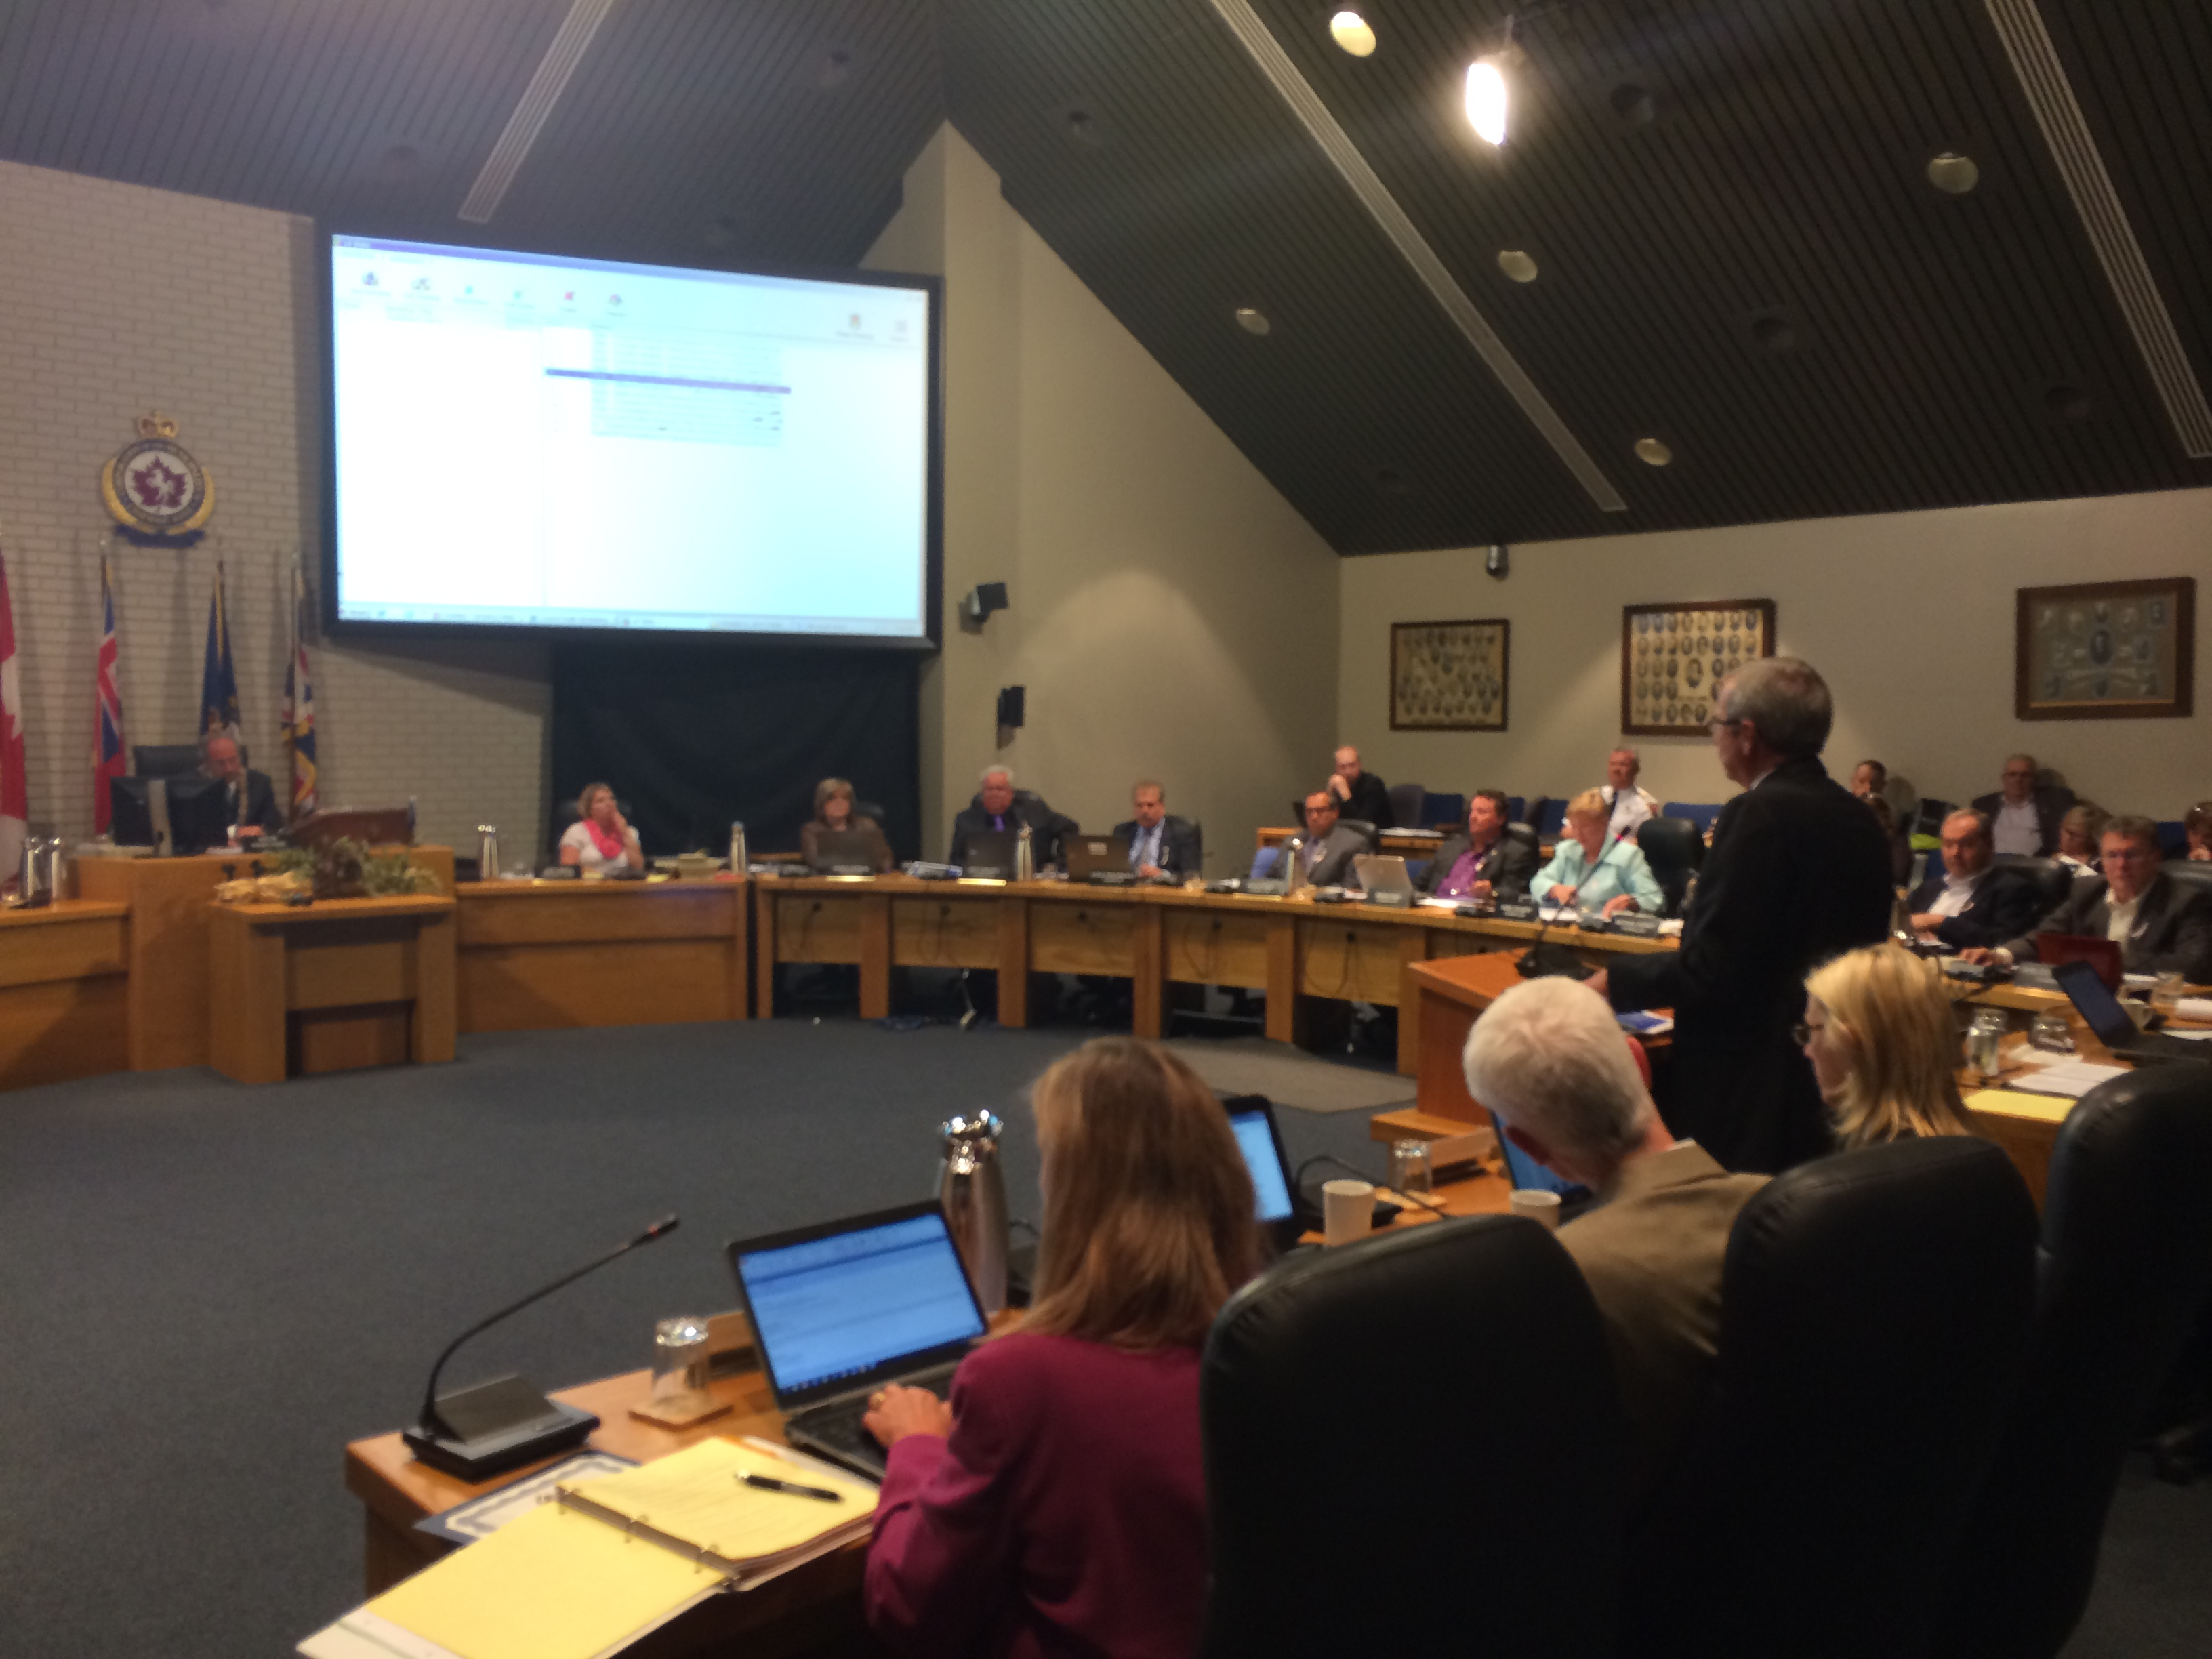 Chatham-Kent Director of Economic Development Michael Burton stands at the regular council meeting on October 6, 2014 to give his second quarter operations report for the John D. Bradley Convention Centre. (Photo by Ricardo Veneza)